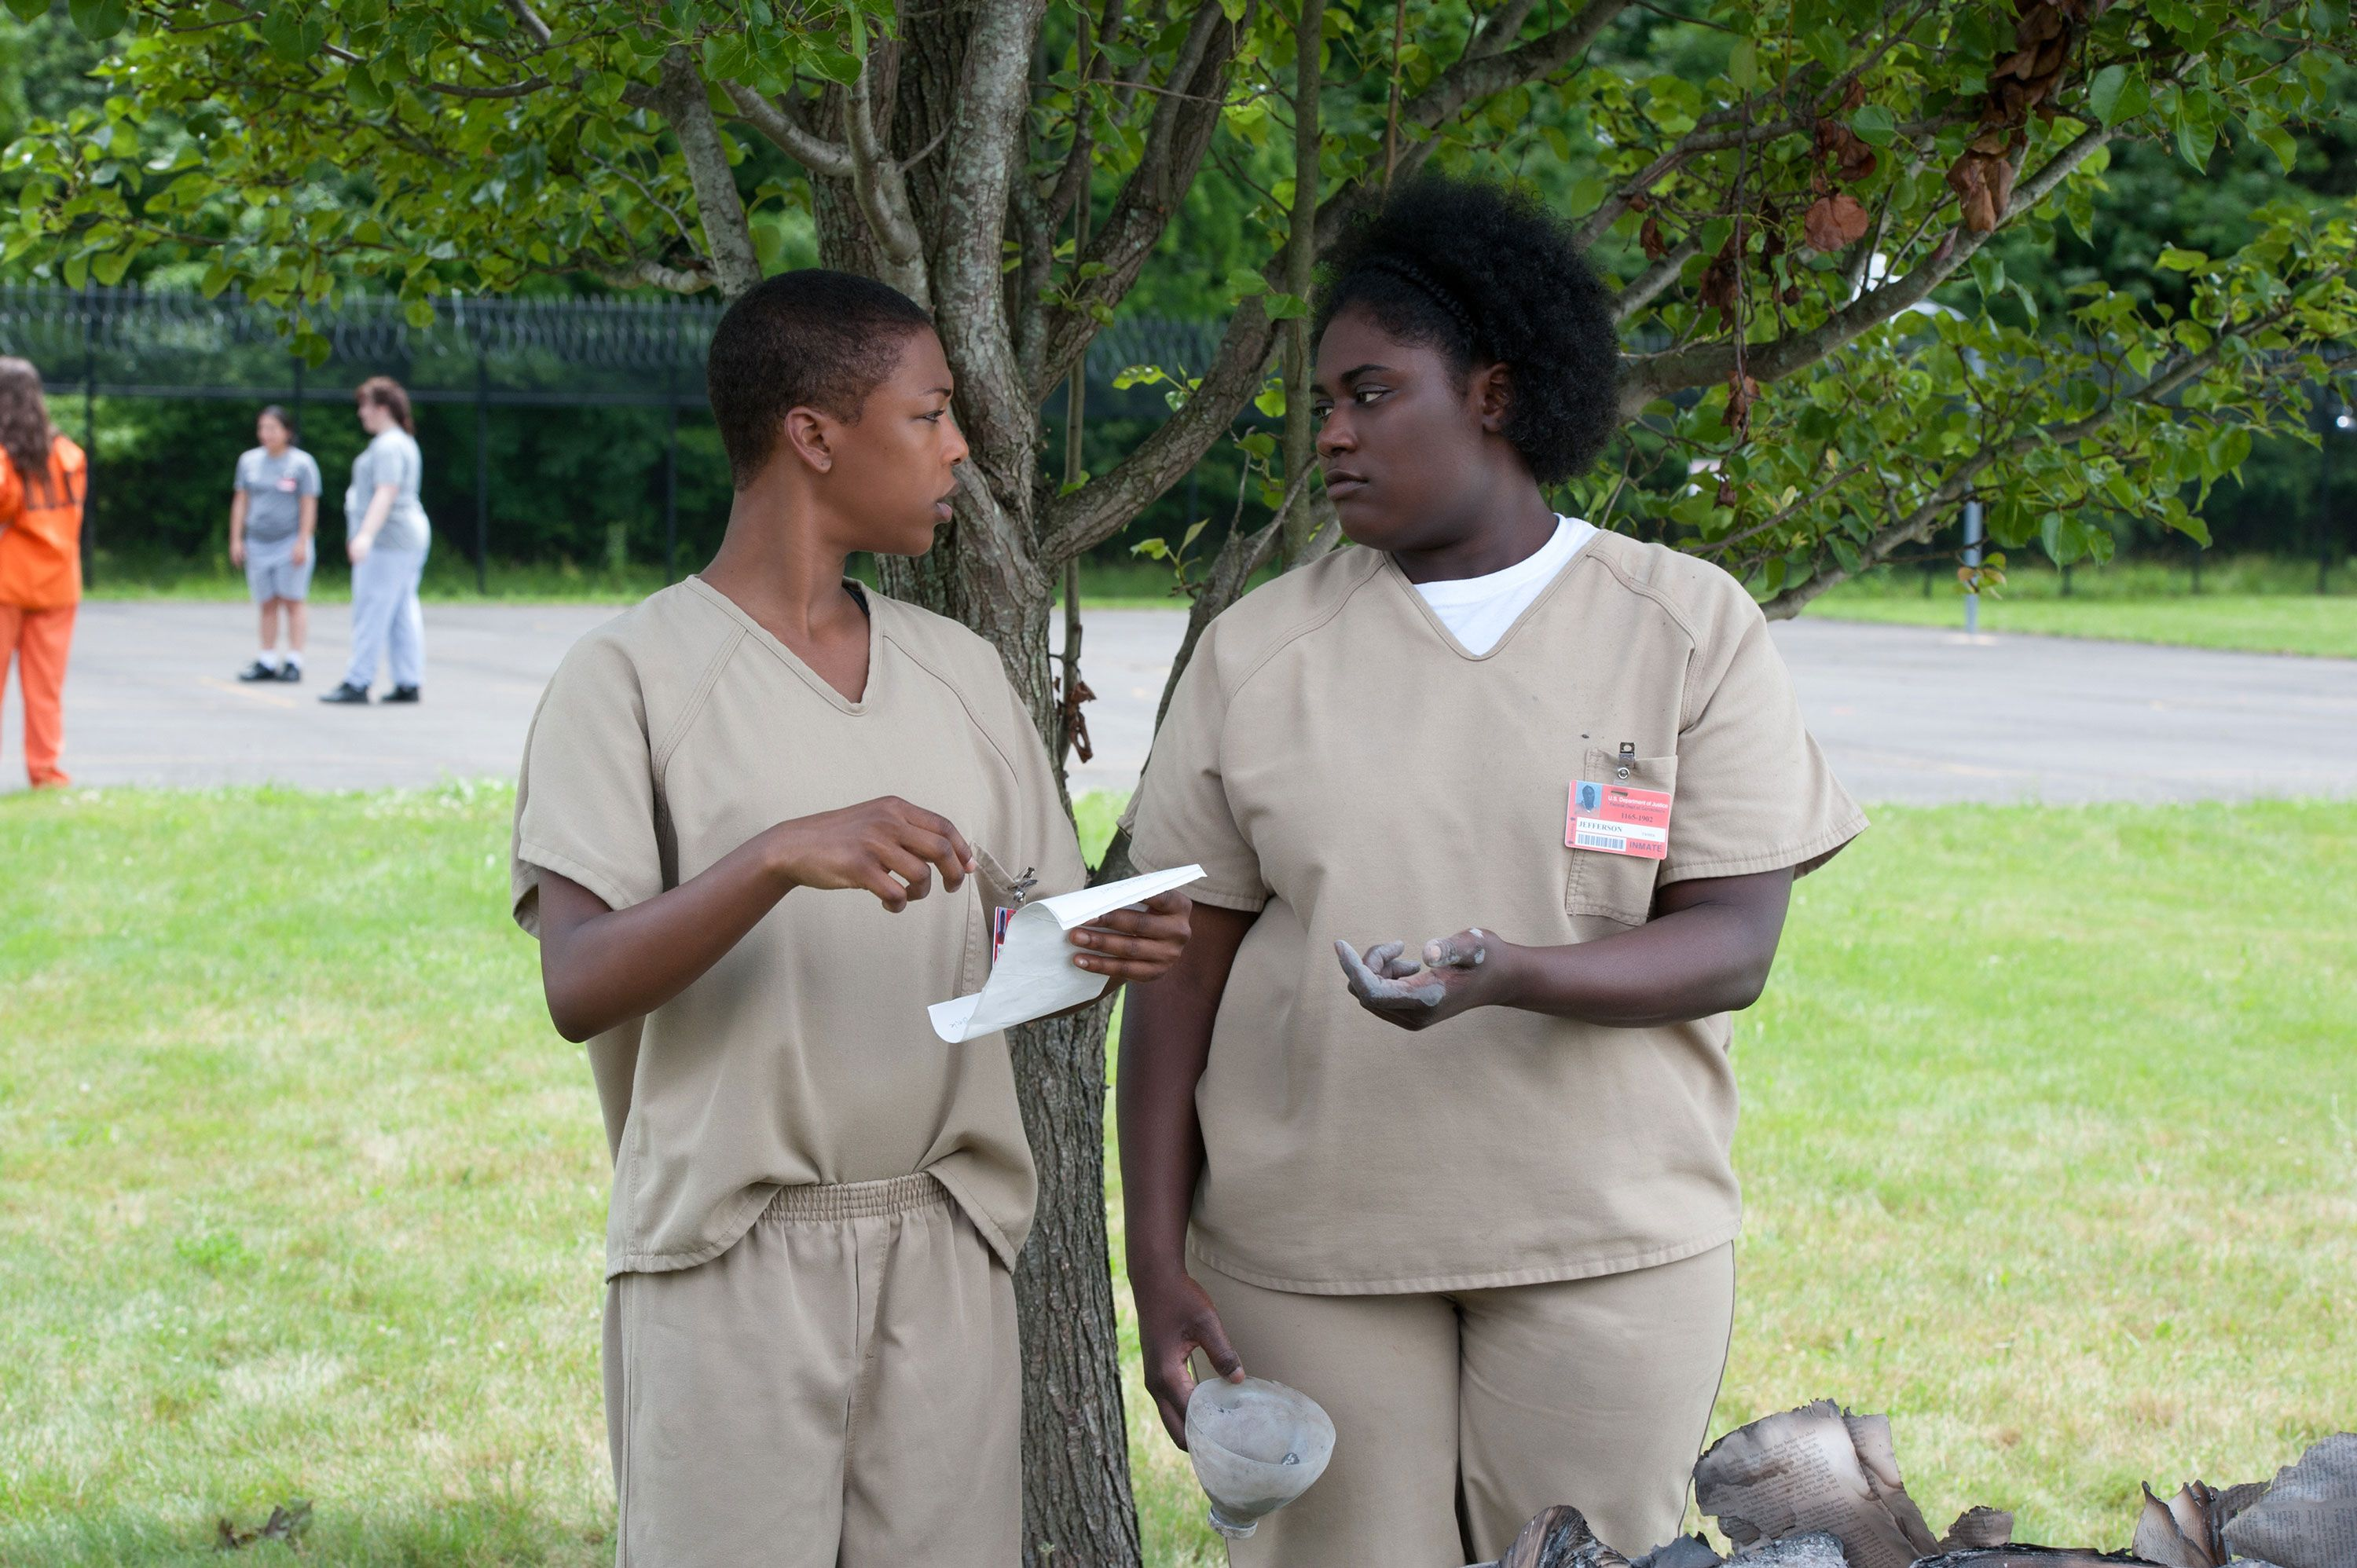 http://cdn.collider.com/wp-content/uploads/2015/06/orange-is-the-new-black-episode-303-samira-wiley-danielle-brooks.jpg